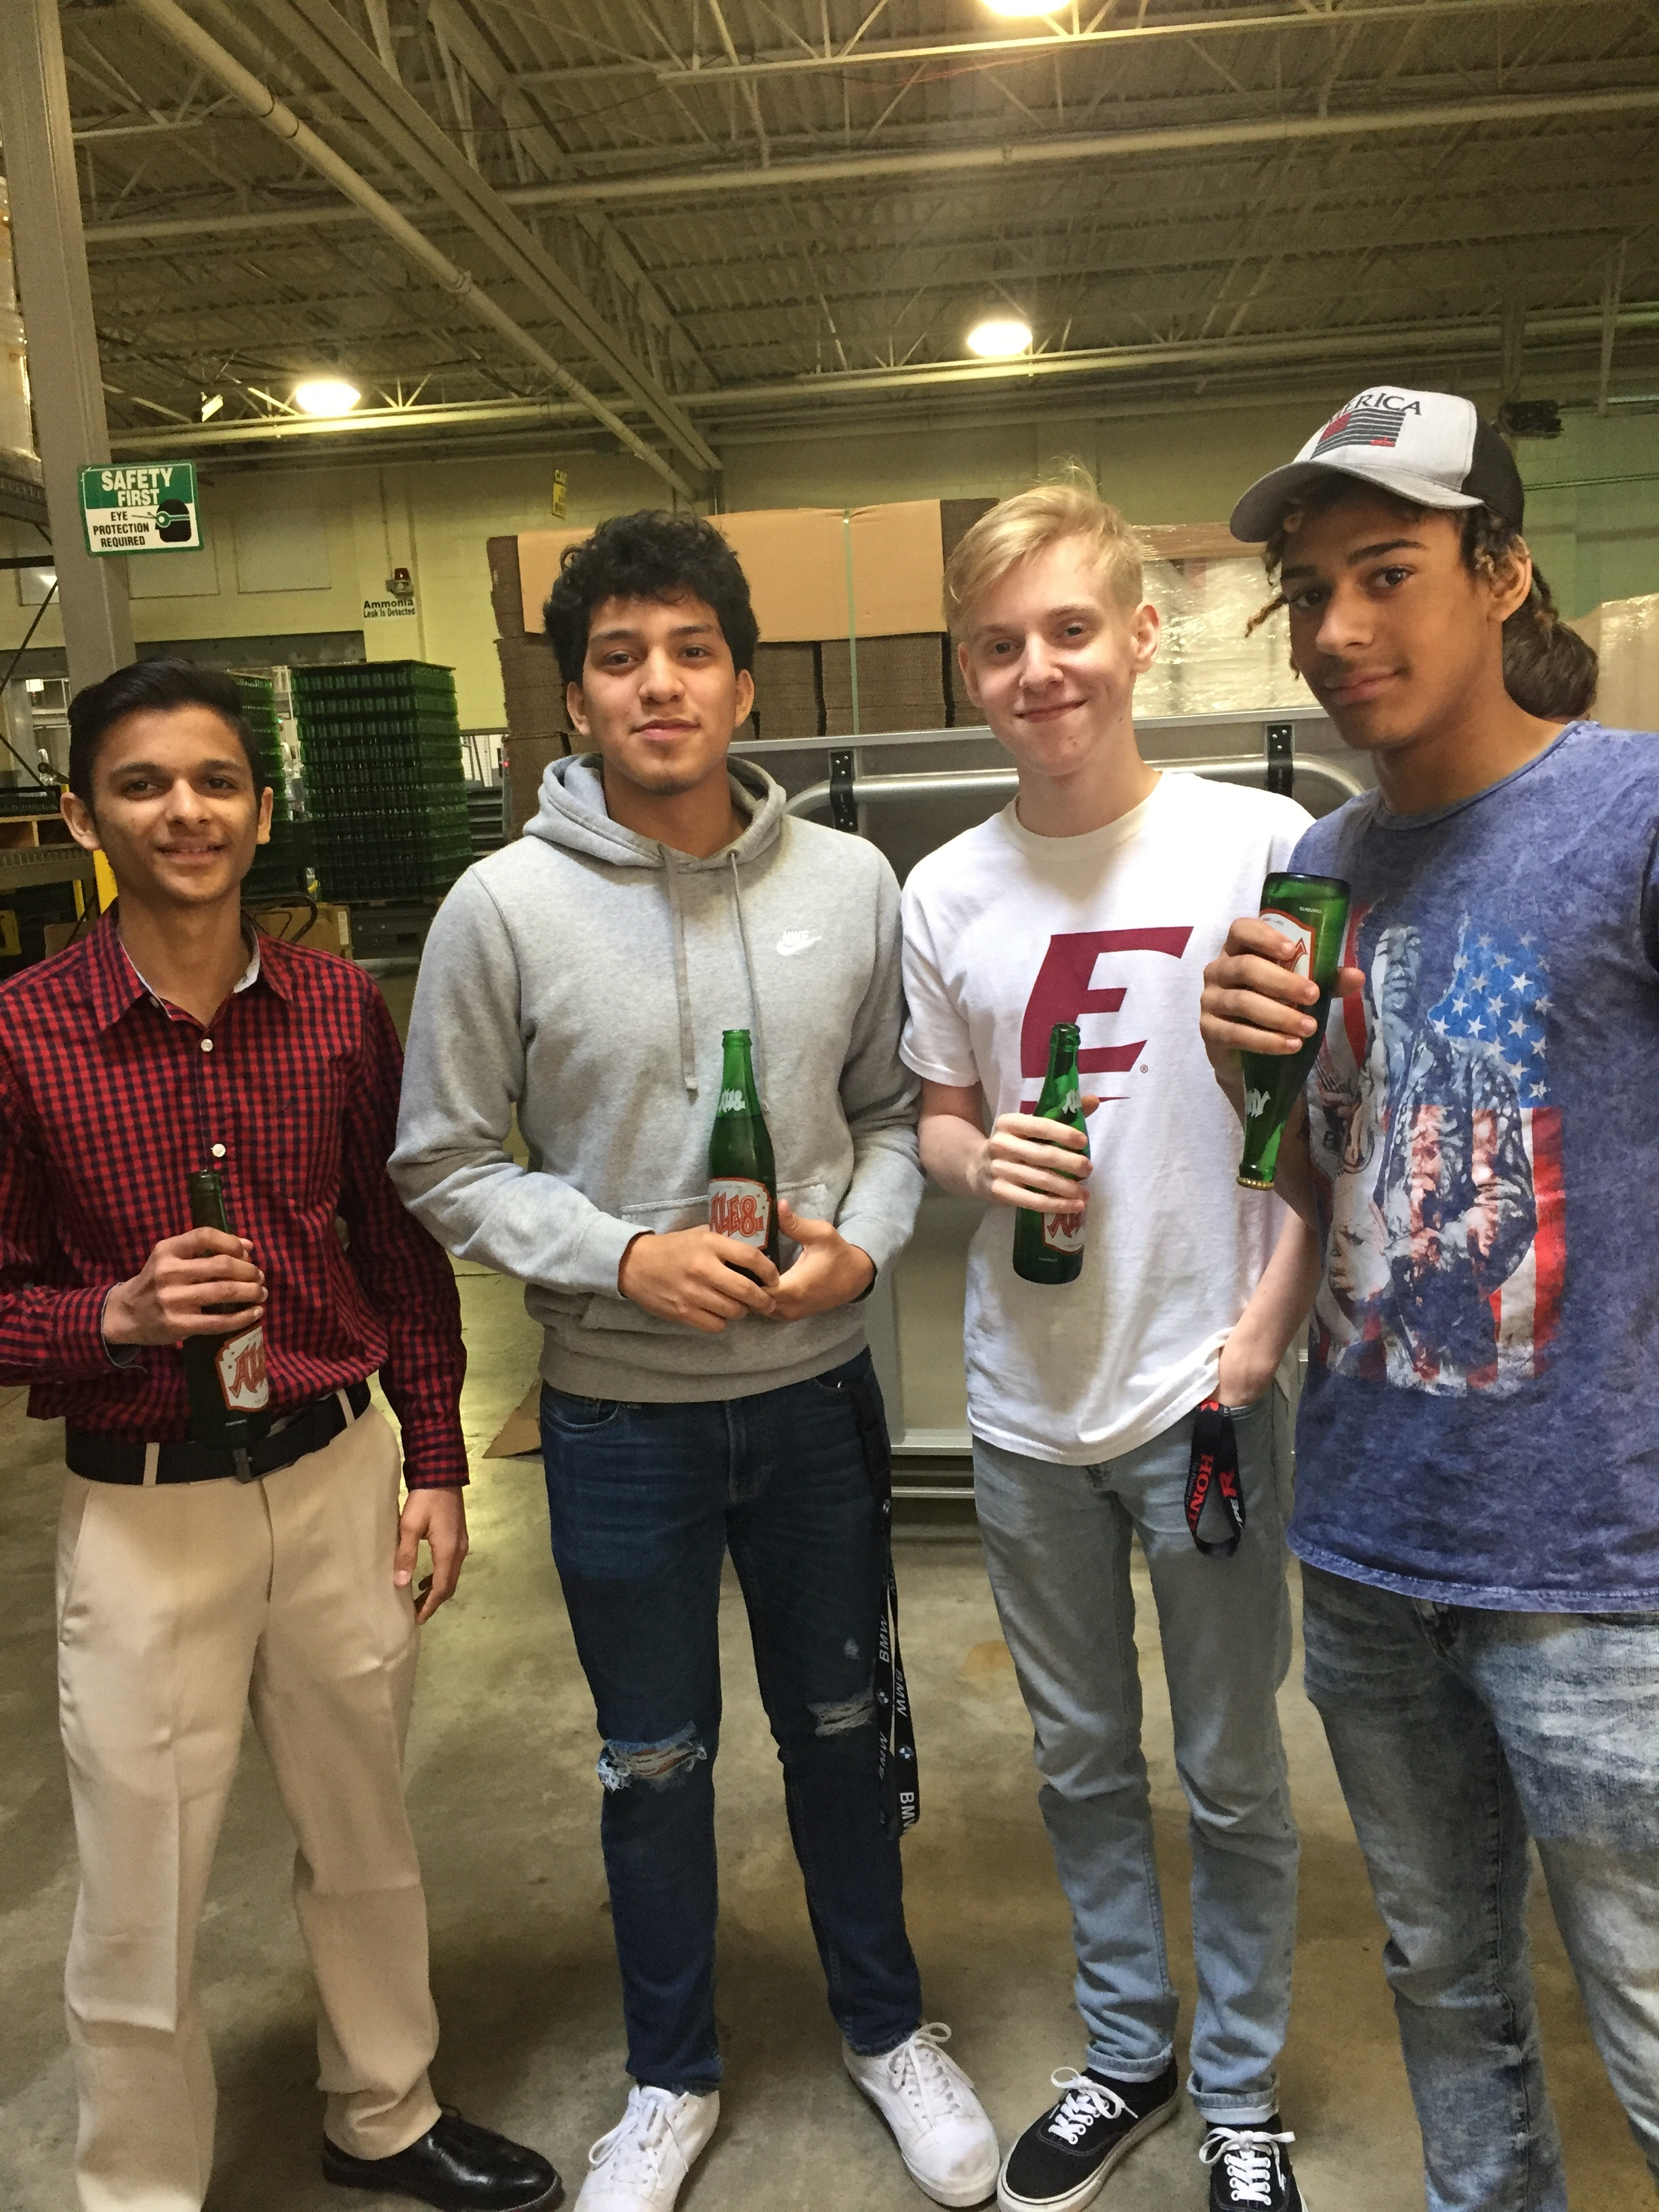 Meet Panchal, Harry Romero, Michael Johnson, & Christian Vanover